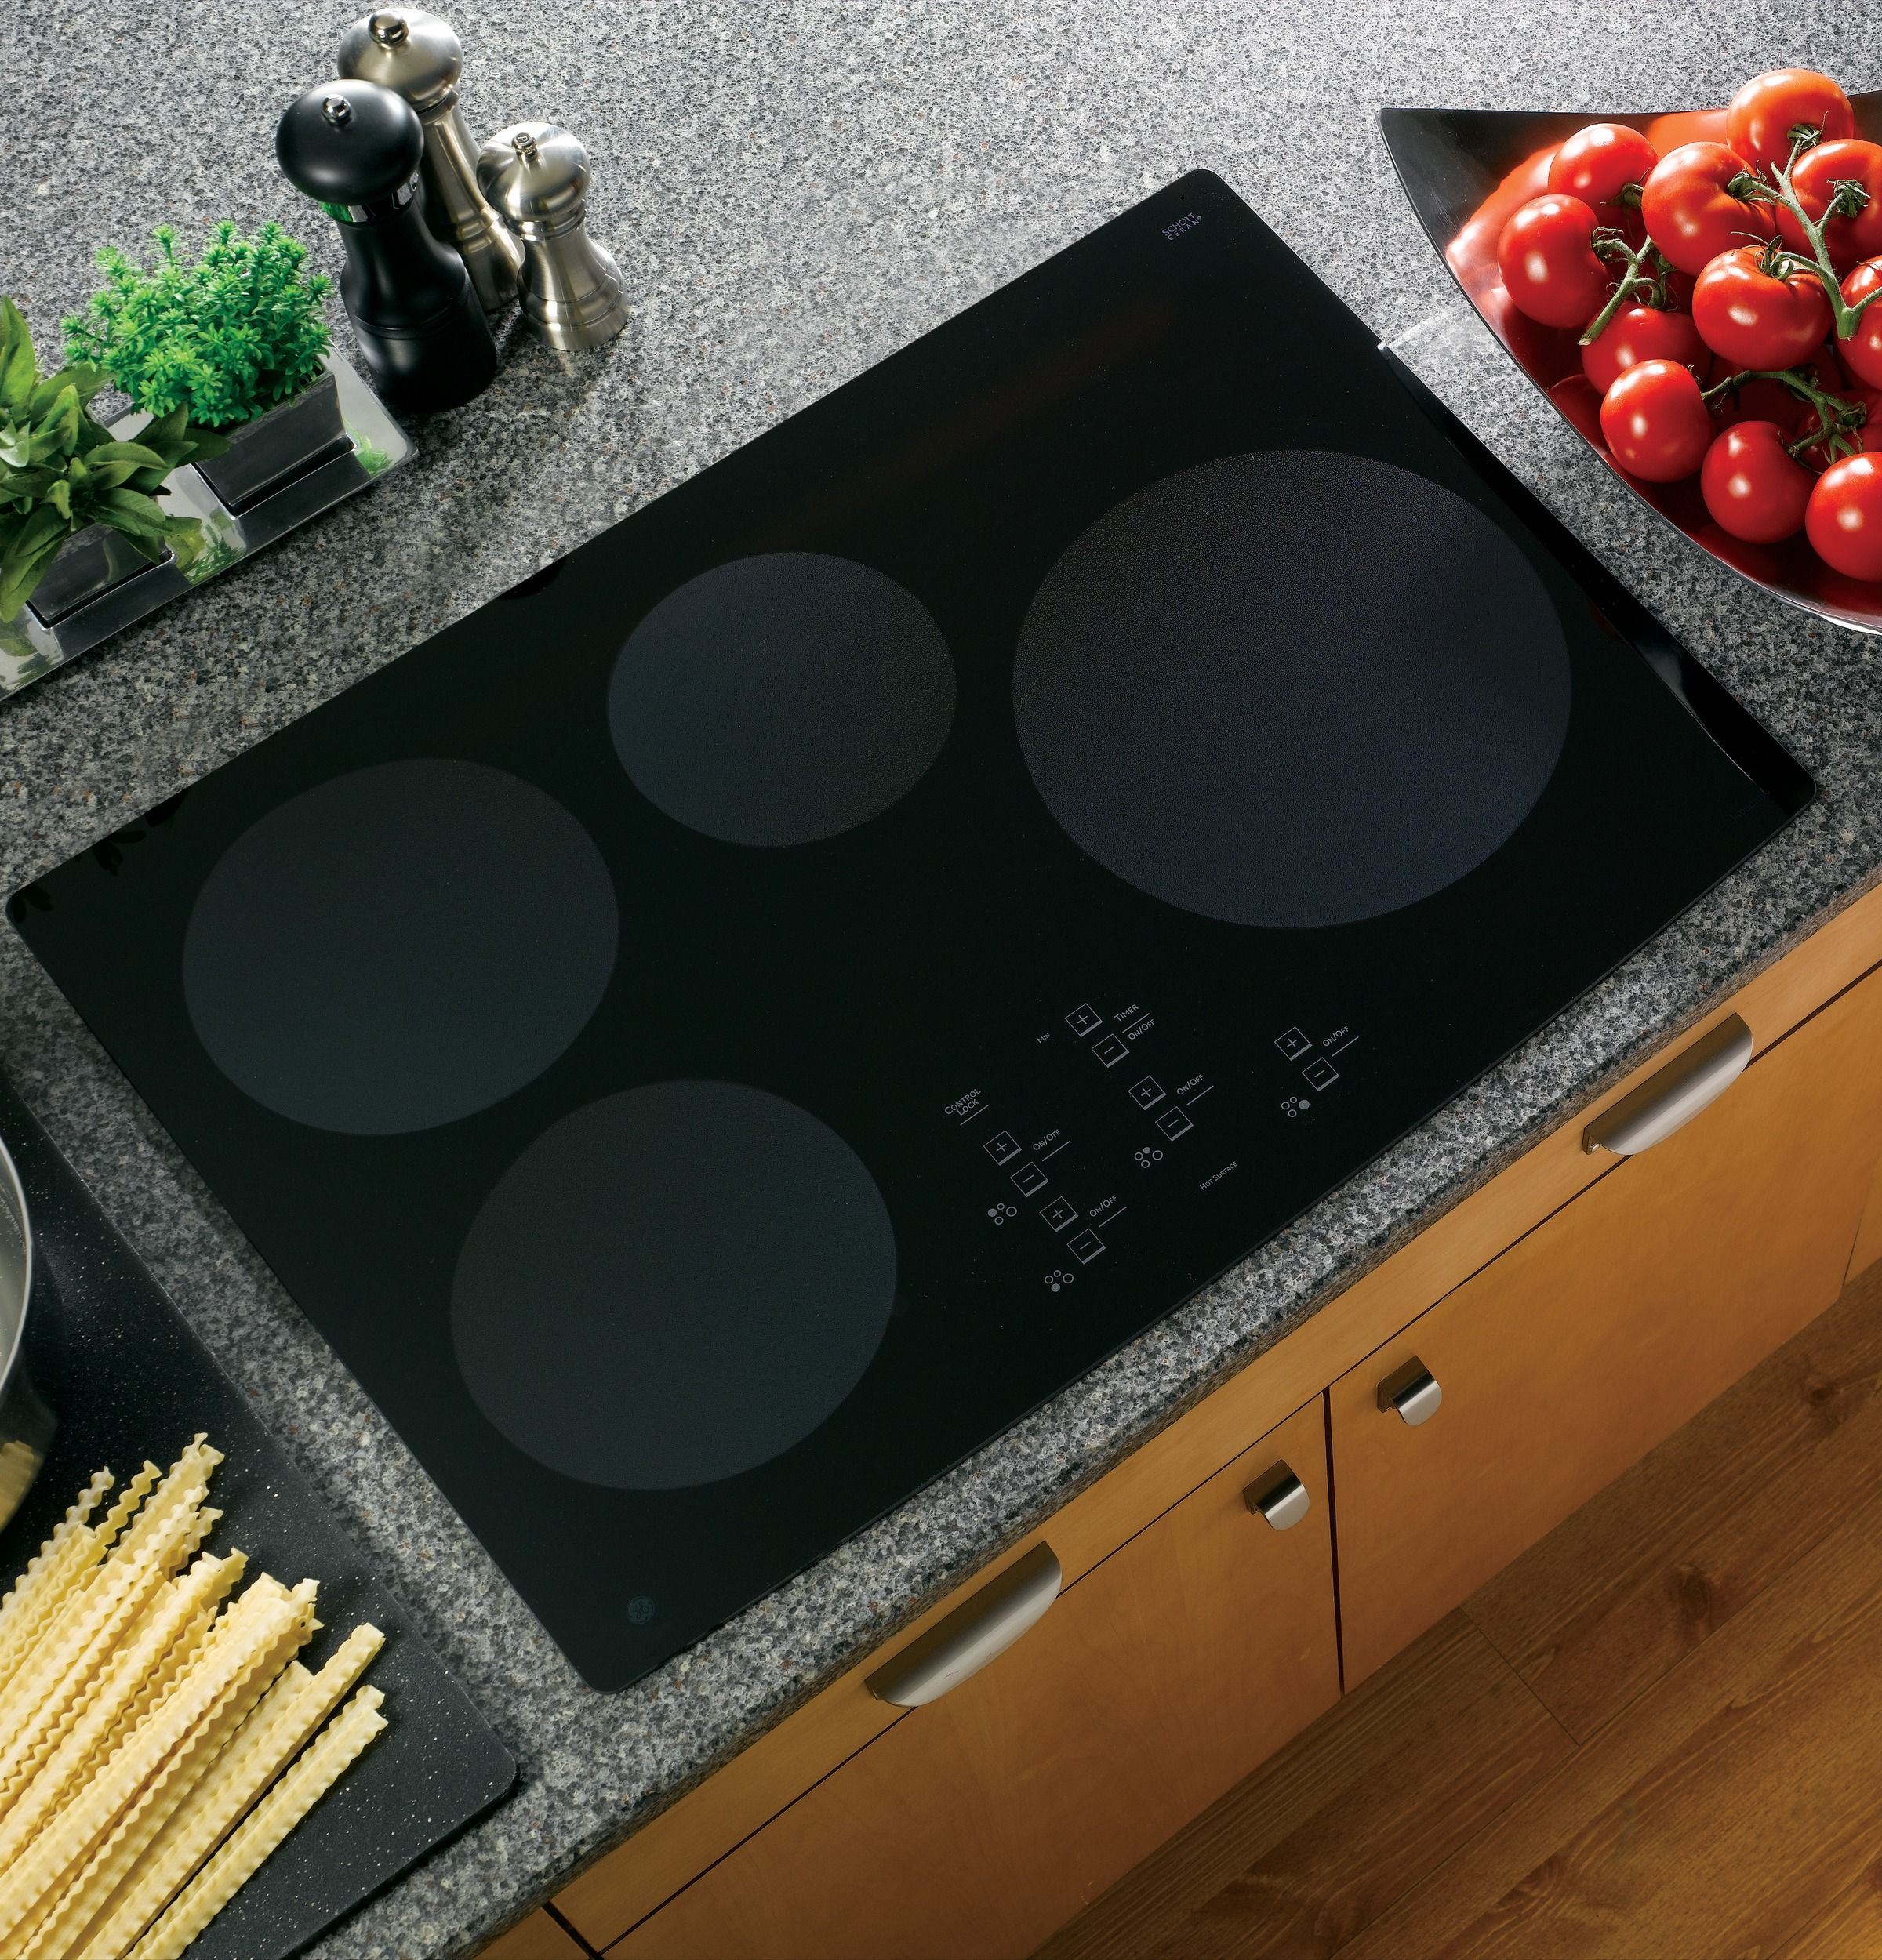 Best Induction Cooktop Reviews Induction Cooktop Electric Cooktop Cooktop